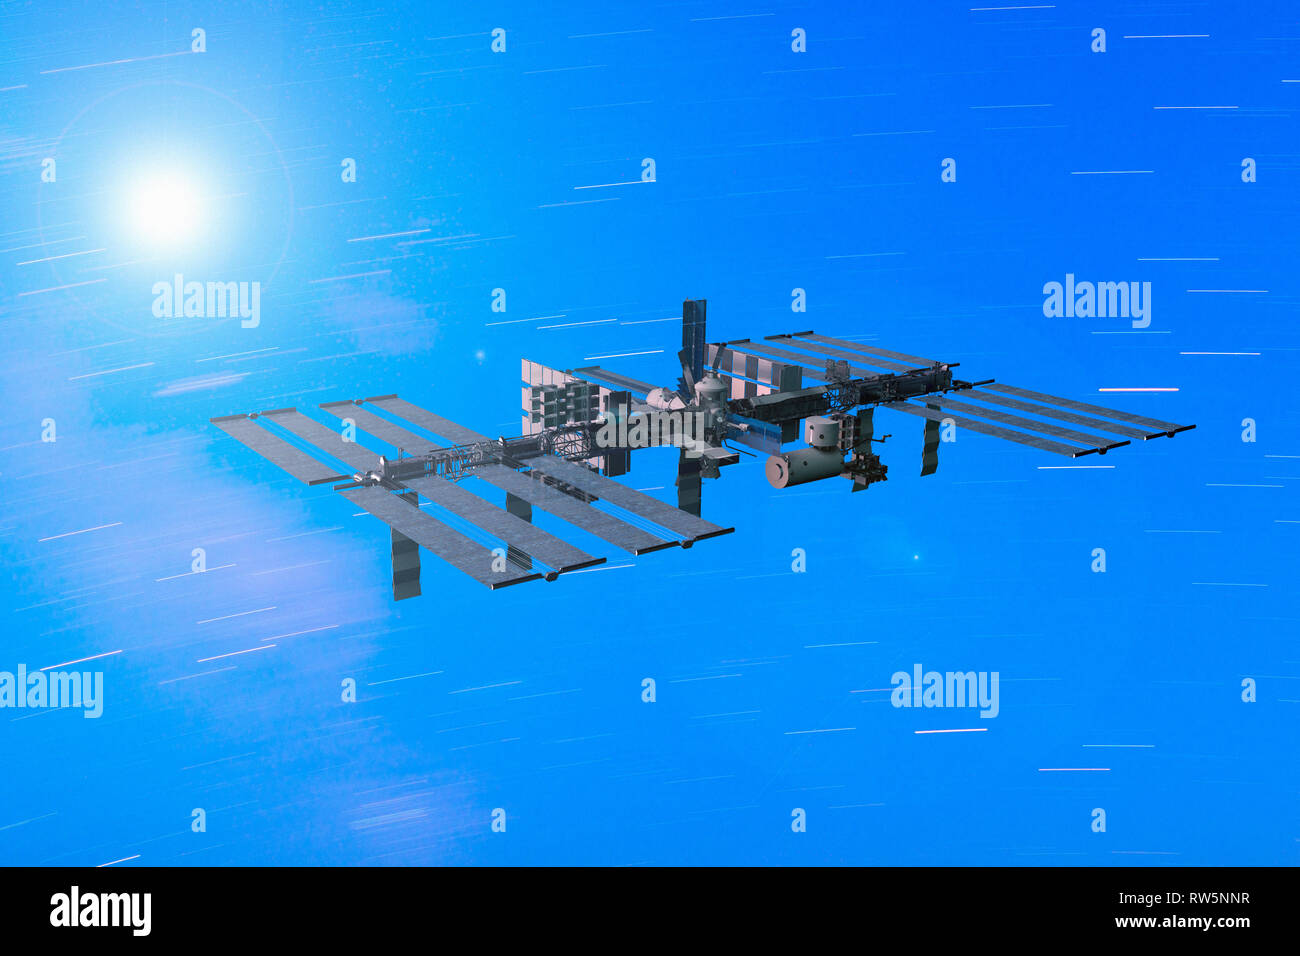 3D rendering of the International Space Station in orbit - Stock Image